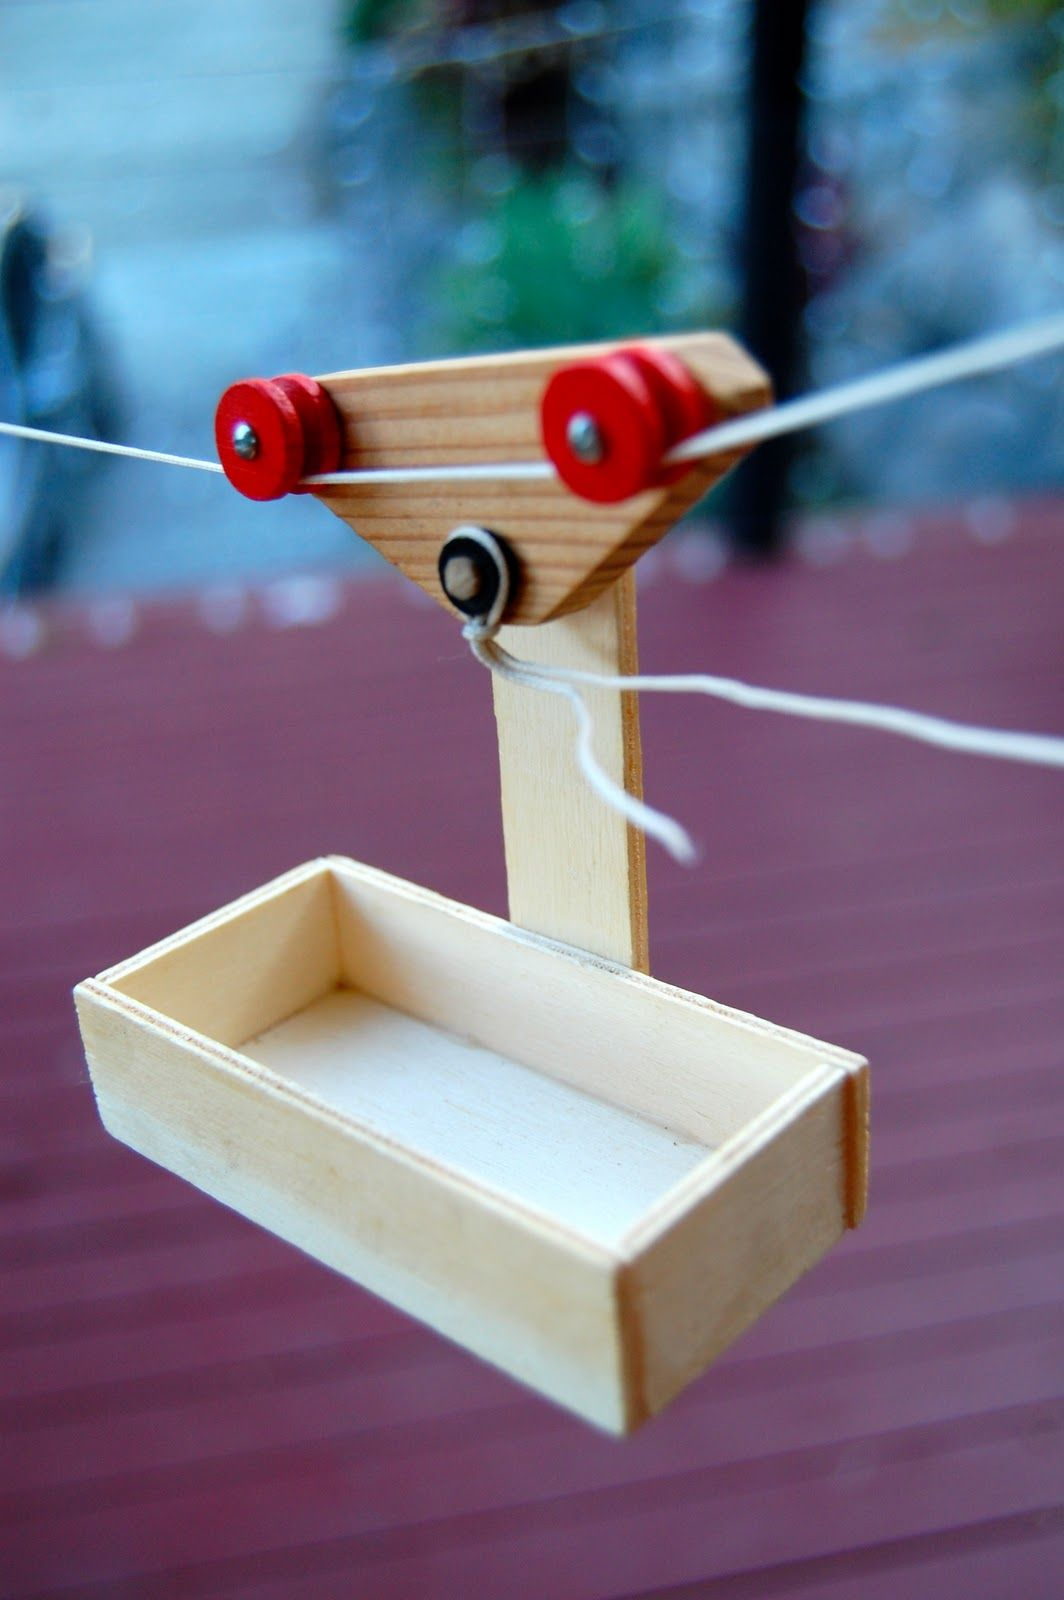 Cool Machines To Build Simple Machines On Pinterest 36 Pins